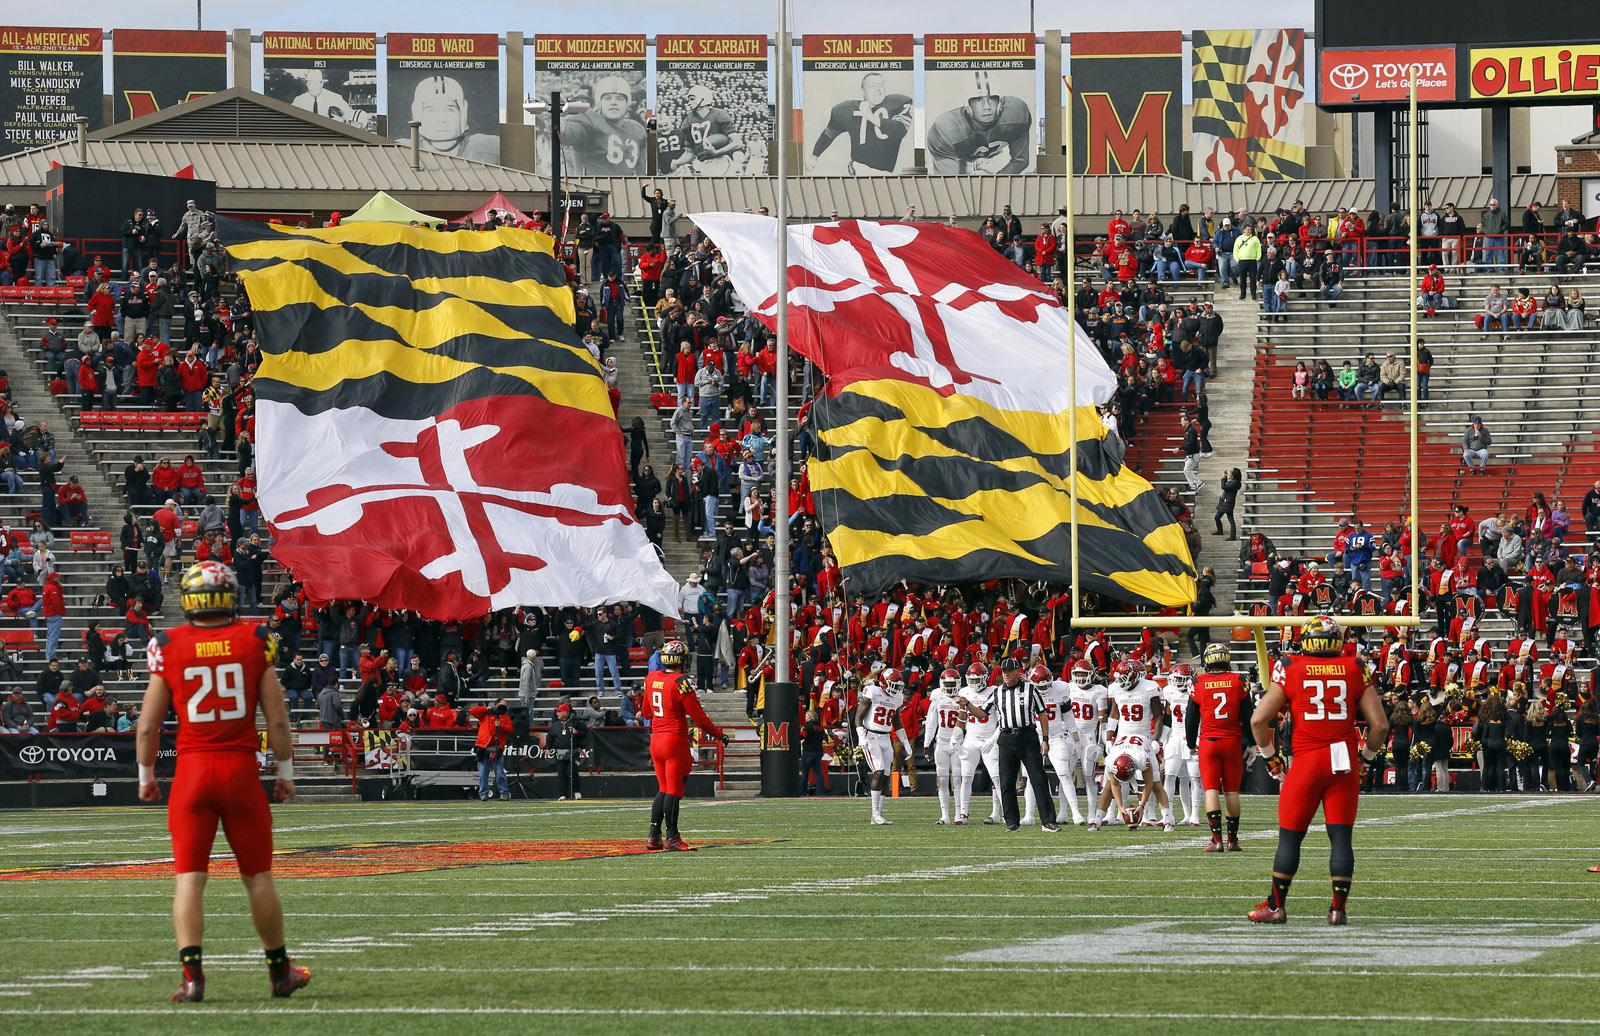 Parents of U. Md. football player who died after practice say coach should step down